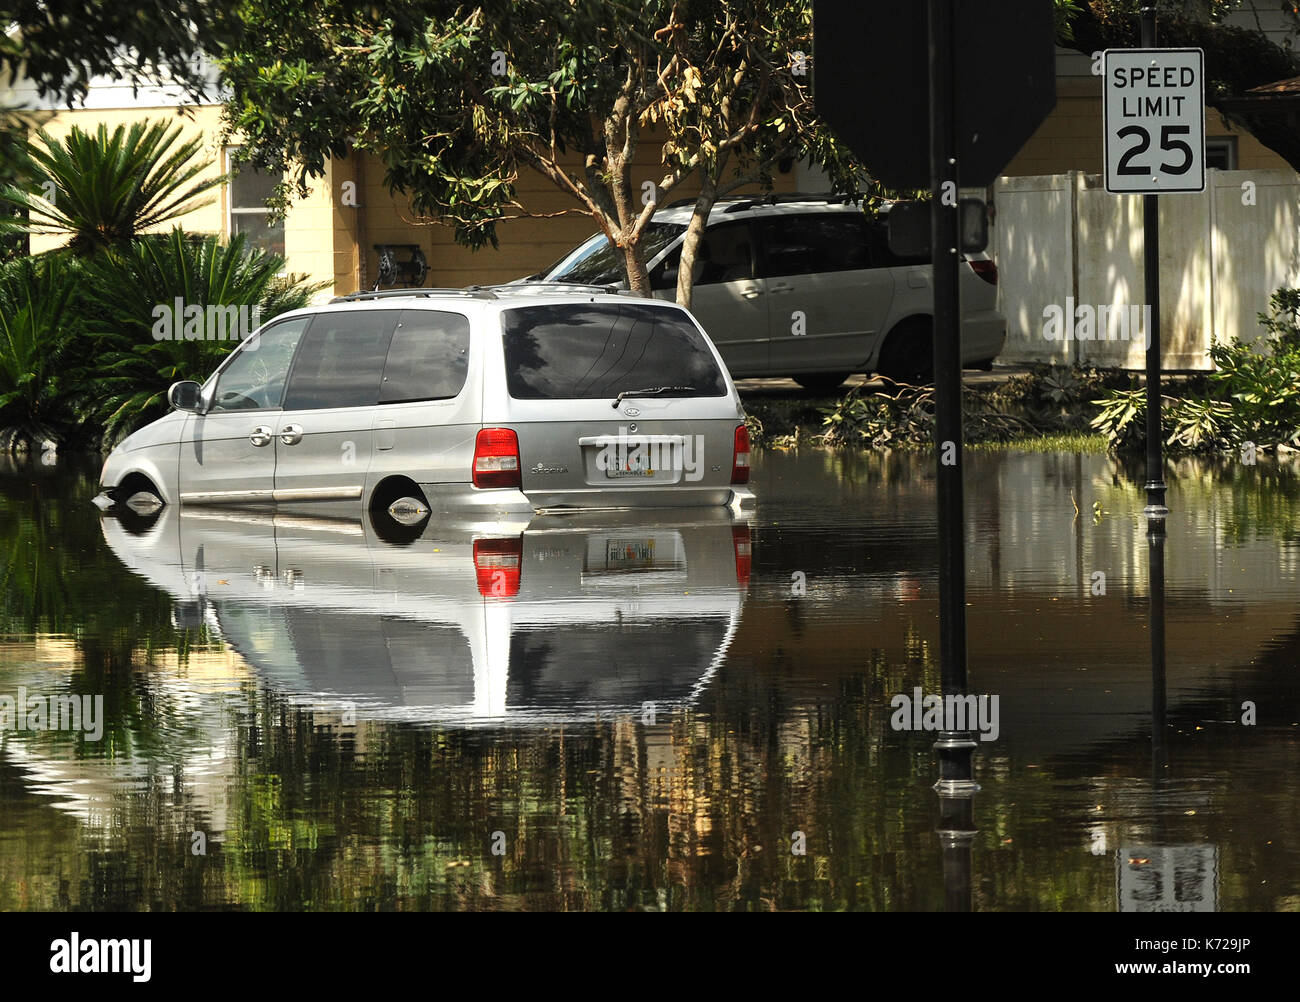 Altamonte Springs, United States. 14th Sep, 2017. September 14, 2017- Altamonte Springs, Florida, United States - A van is seen reflected in flood waters in the street in the Spring Oaks neighborhood of Altamonte Springs, Florida on September 14, 2017. Emergency workers used boats and trucks to rescue more than 50 residents on September 11, 2017 when water from the nearby Little Wekiva River swamped their homes in the wake of Hurricane Irma. Credit: Paul Hennessy/Alamy Live News - Stock Image